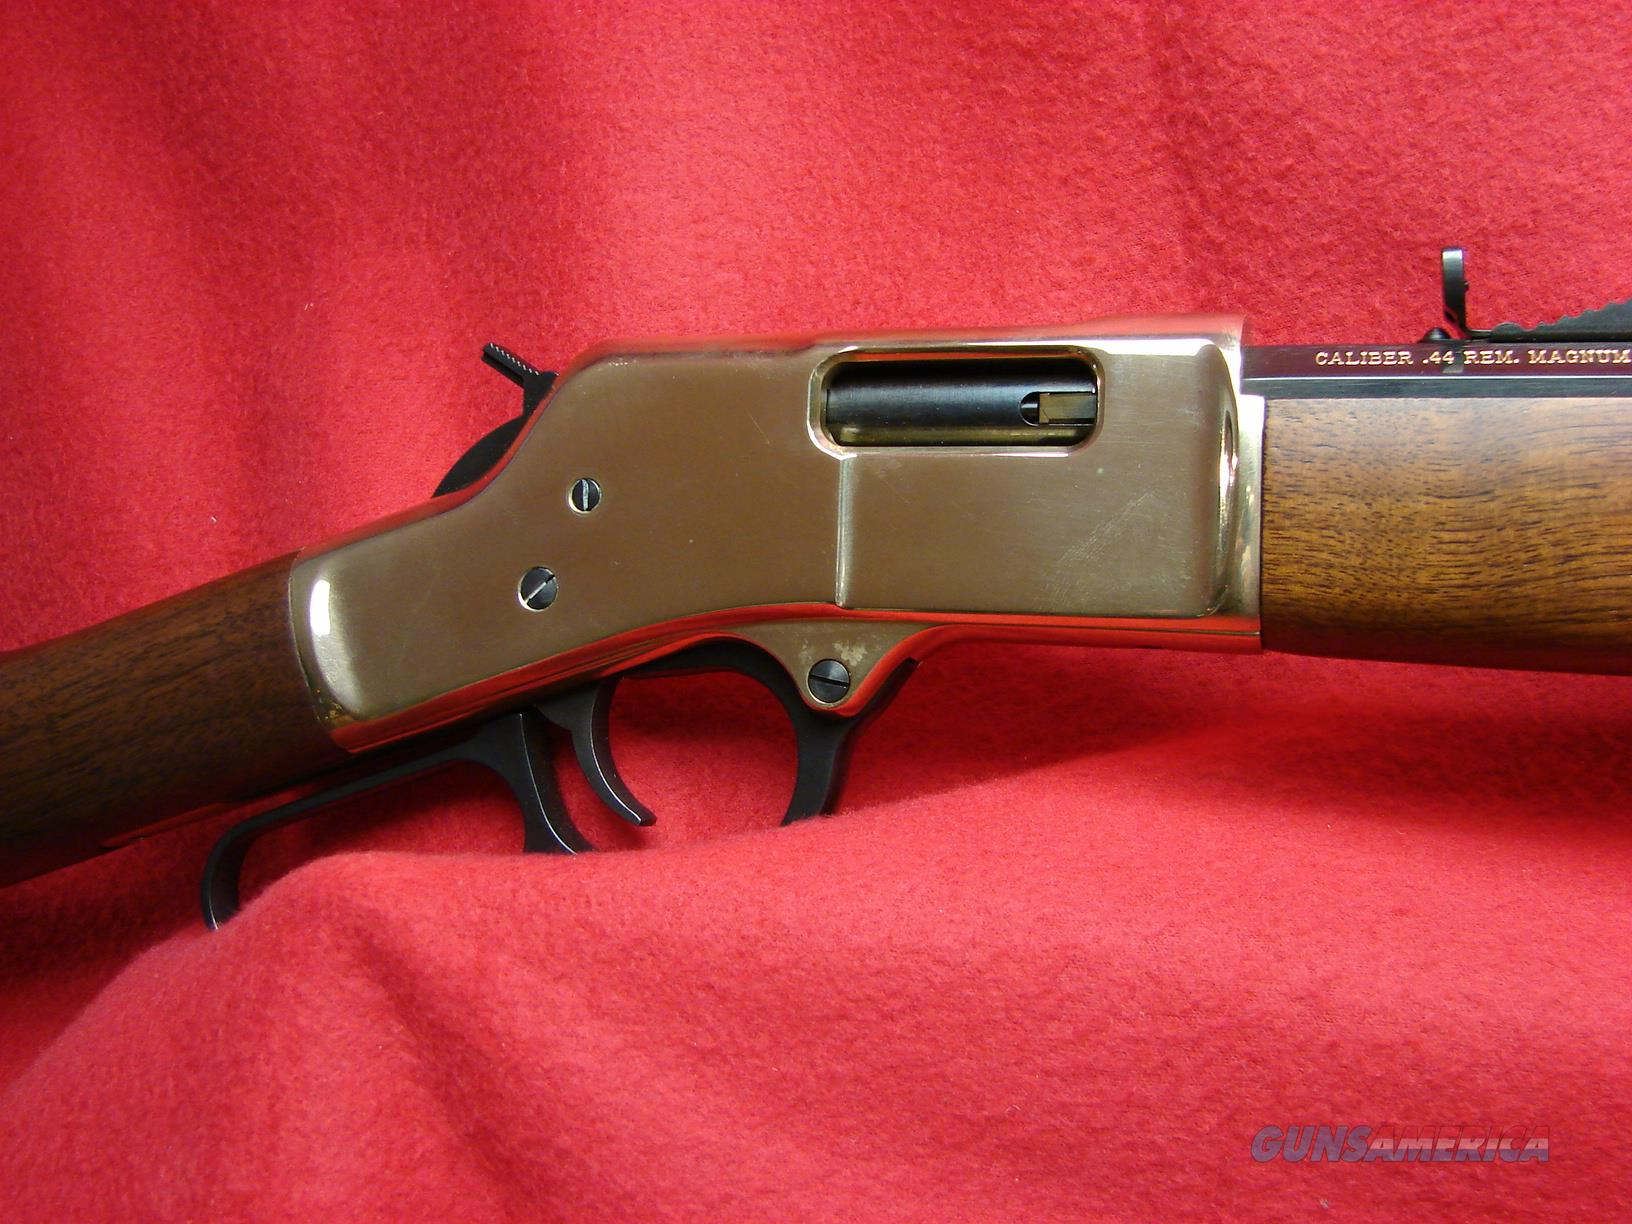 Henry Repeating Arms - Yellowboy/Big Boy Lever Action Rifle in 44 Magnum - Used  Guns > Rifles > Henry Rifle Company